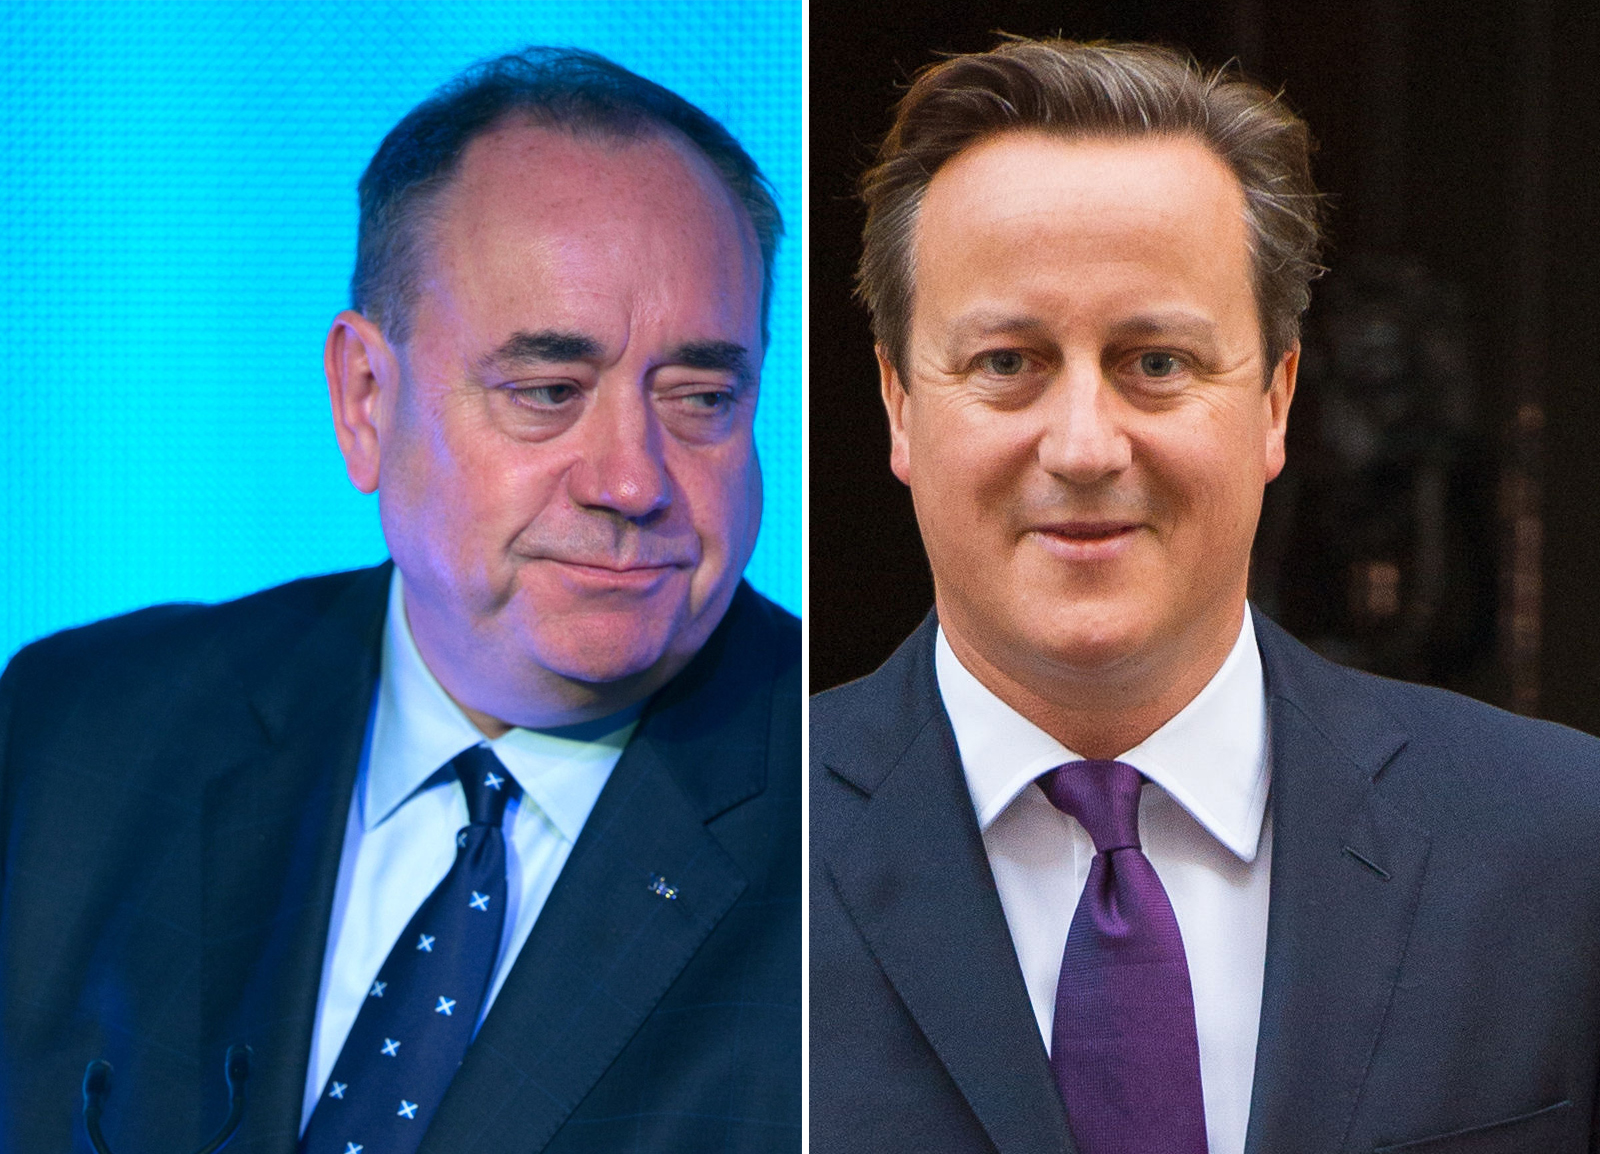 Scotland to remain part of the UK: David Cameron promises increased devolution as Twitter makes some noise